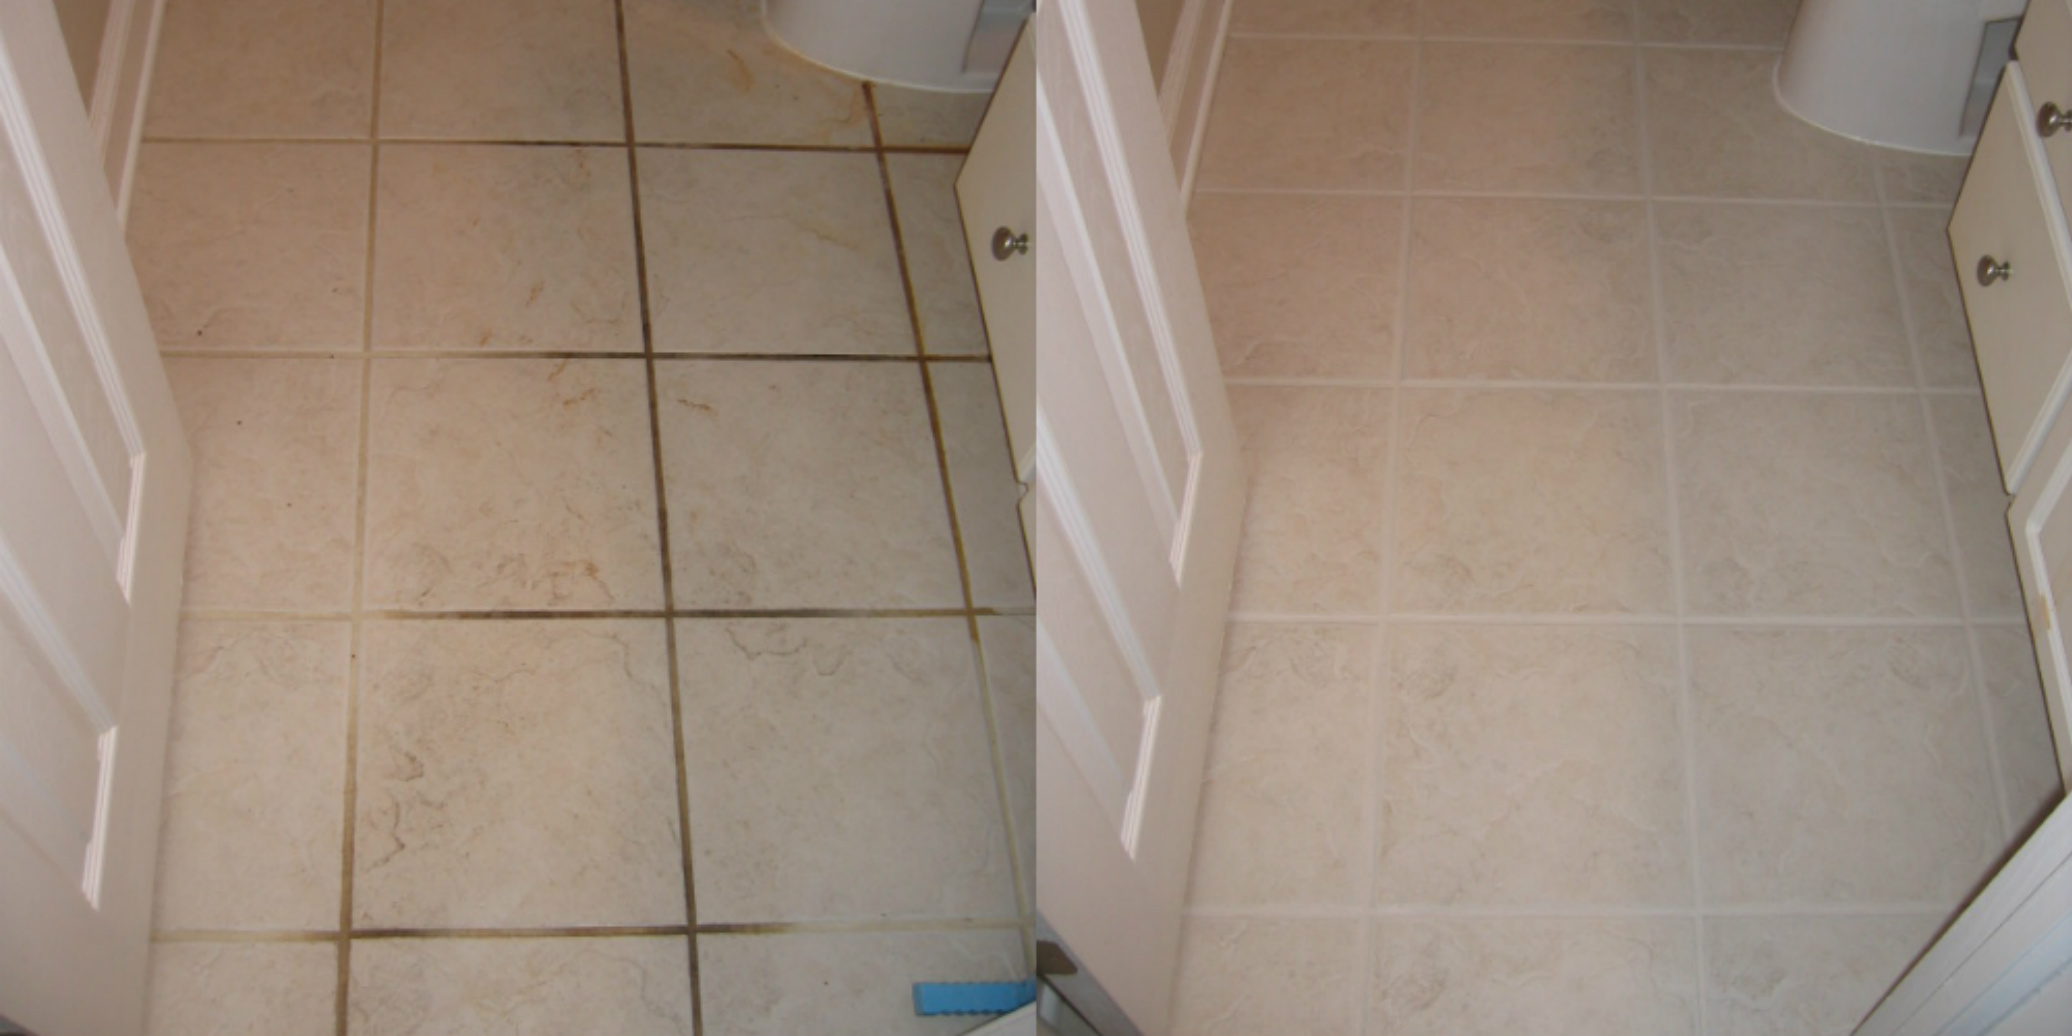 Tile And Grout Cleaning Melbourne Fresh Tile Cleaning - Best way to clean bathroom wall tiles